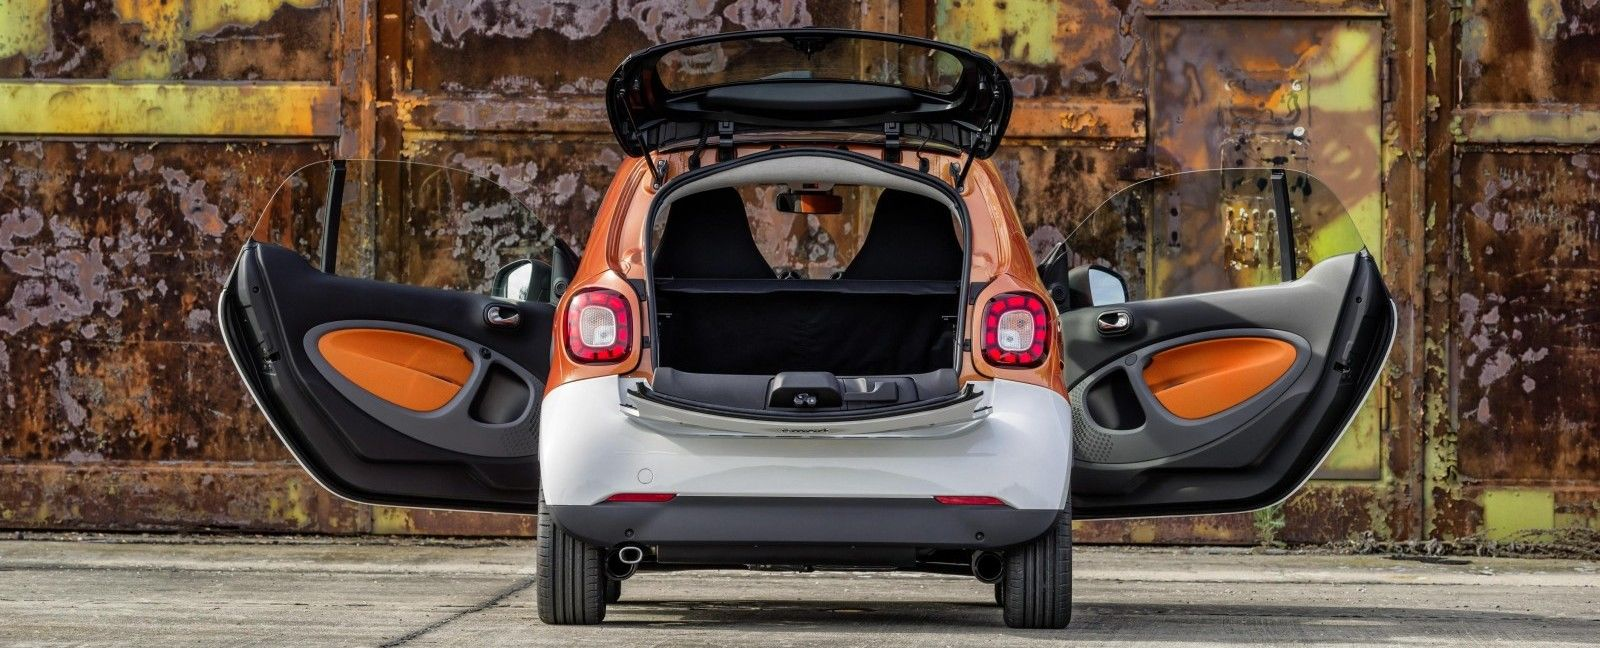 Smart Fortwo And Forfour Sizes And Dimensions Guide Carwow